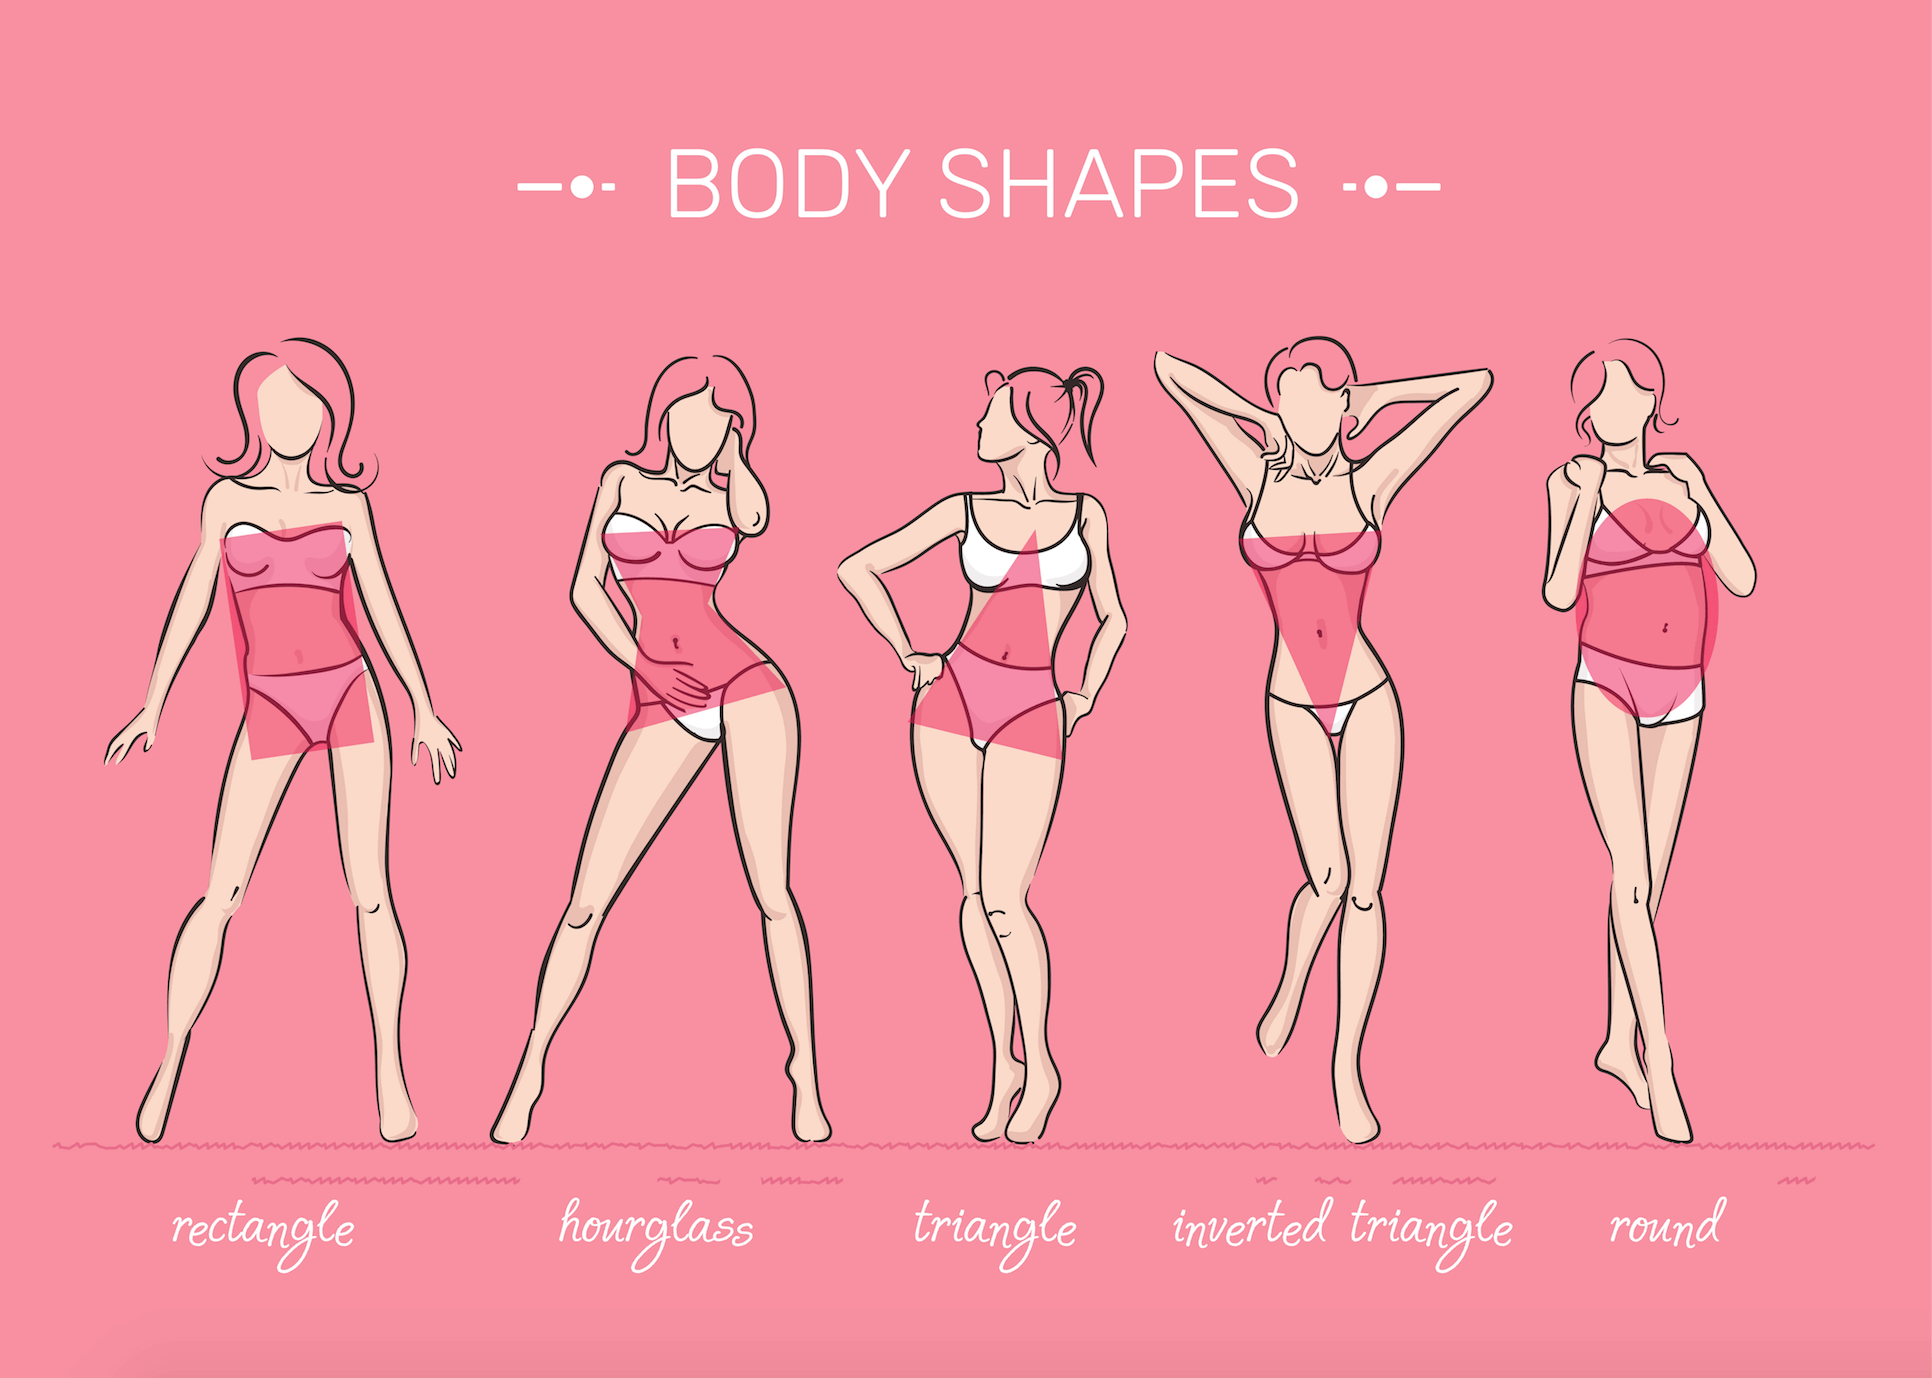 Can you identify your body shape in any of these figures?